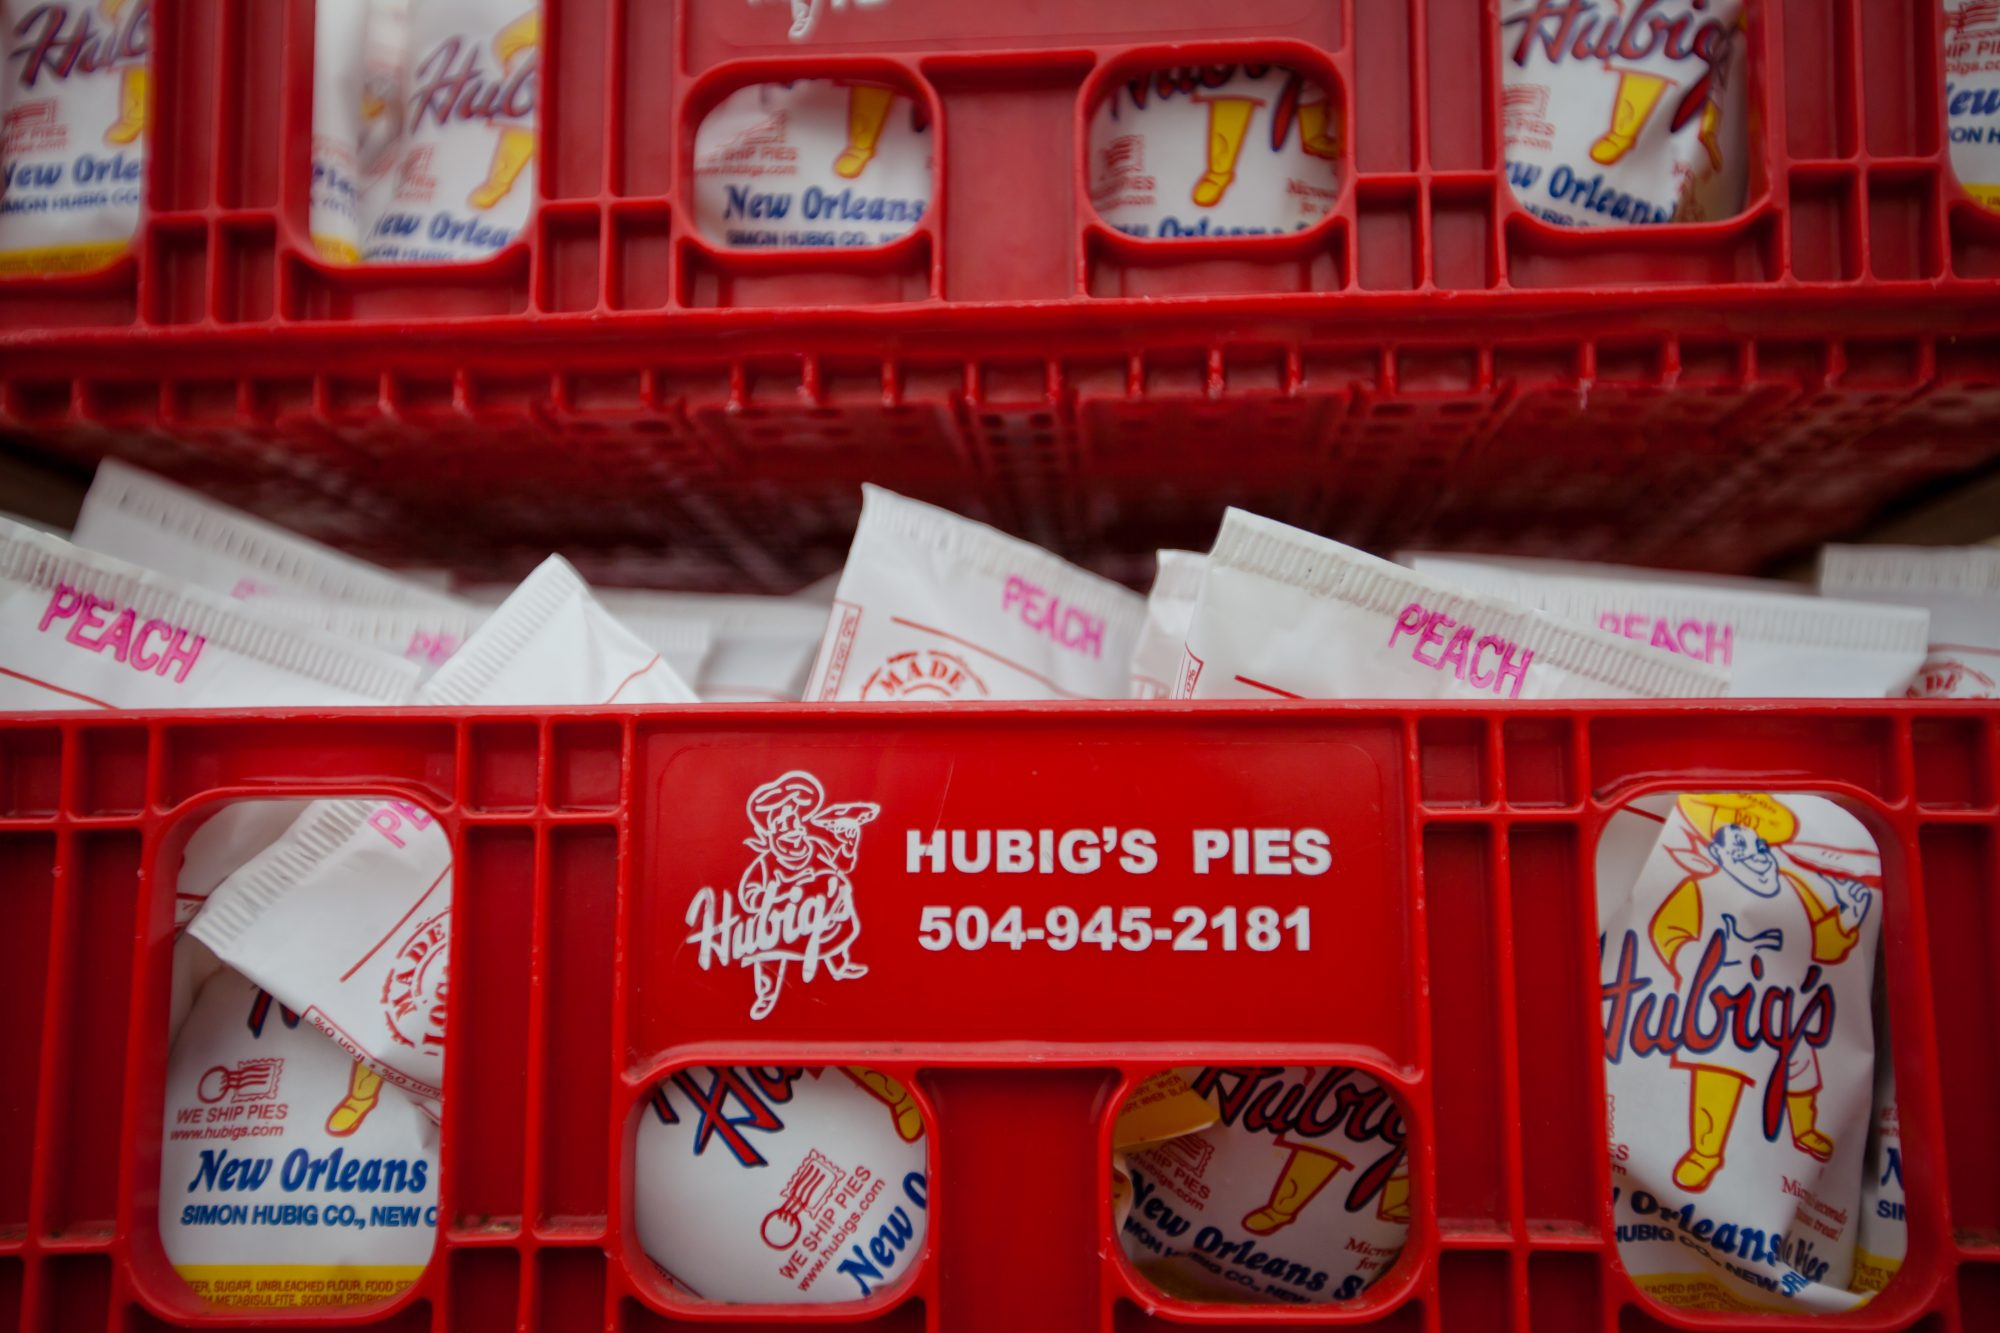 Years After Catastrophic Fire, Hubig's Pies Makes Its Triumphant Return to New Orleans